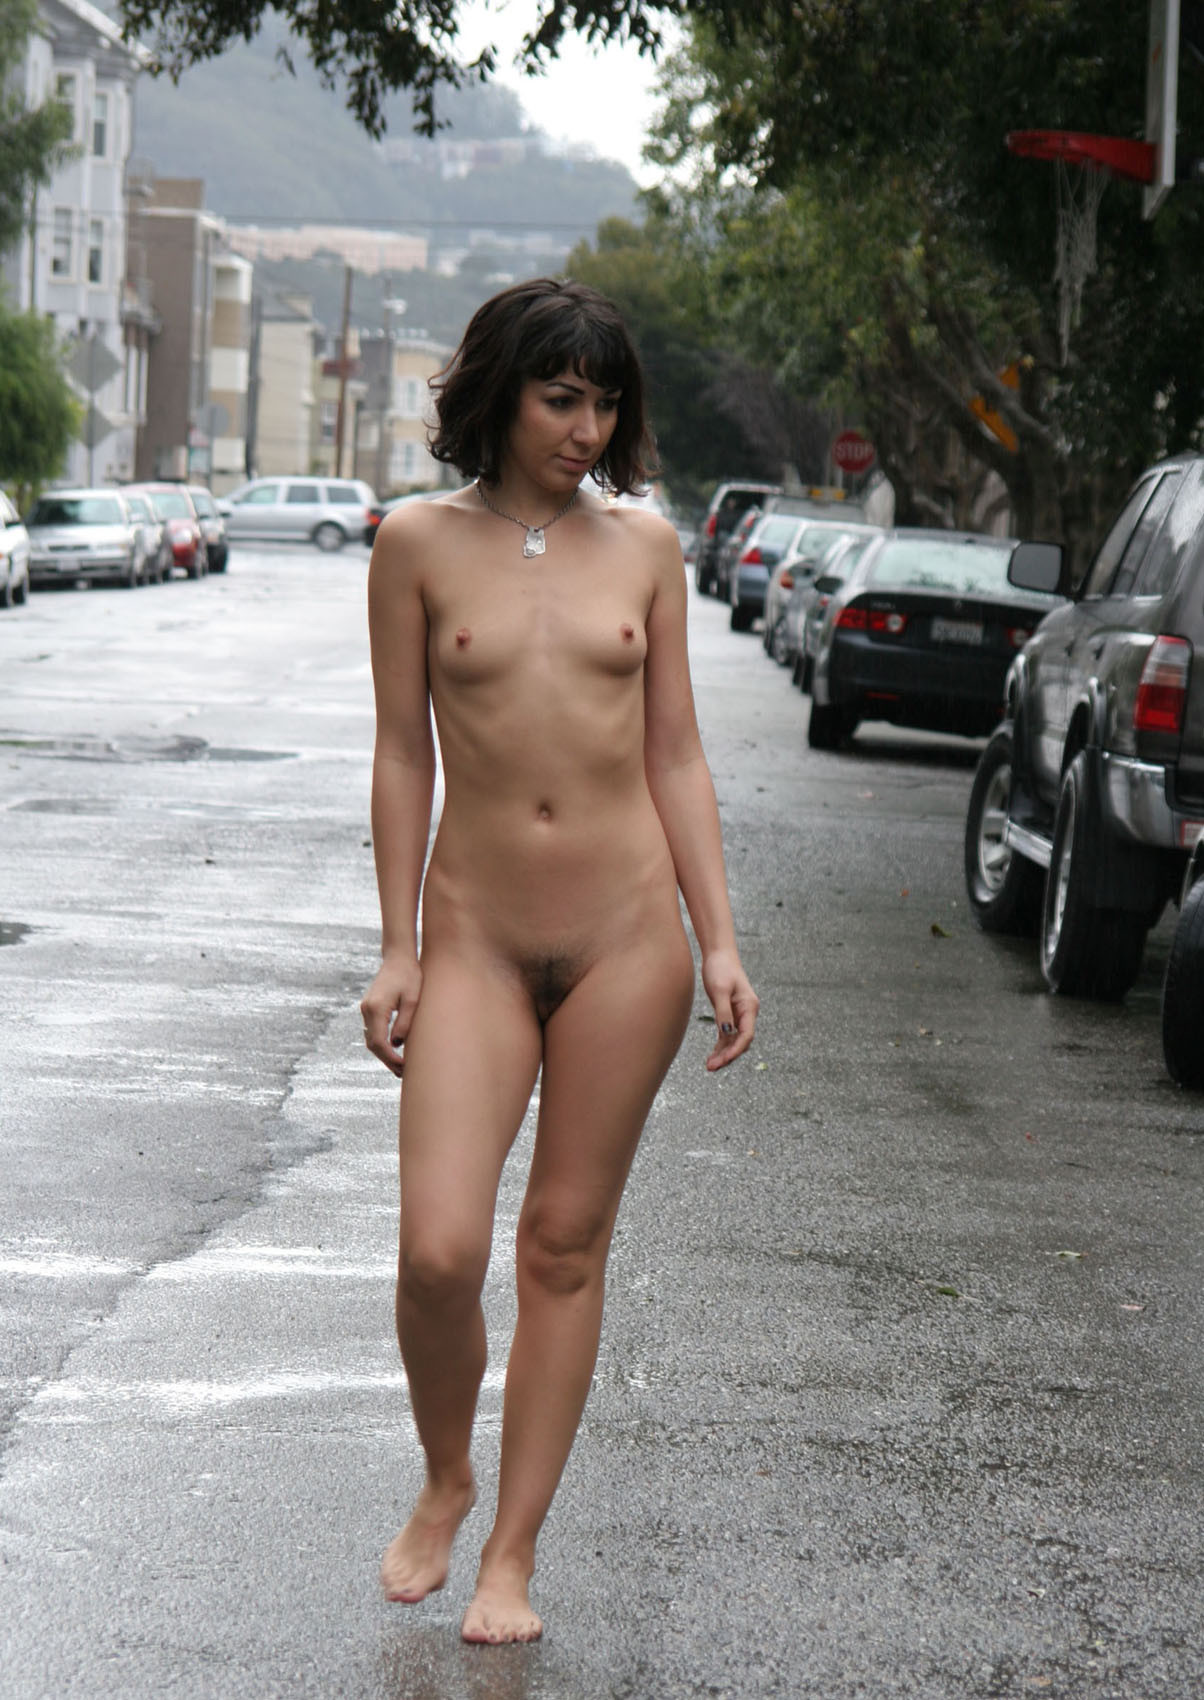 Naked small girls in street, she male with pussy